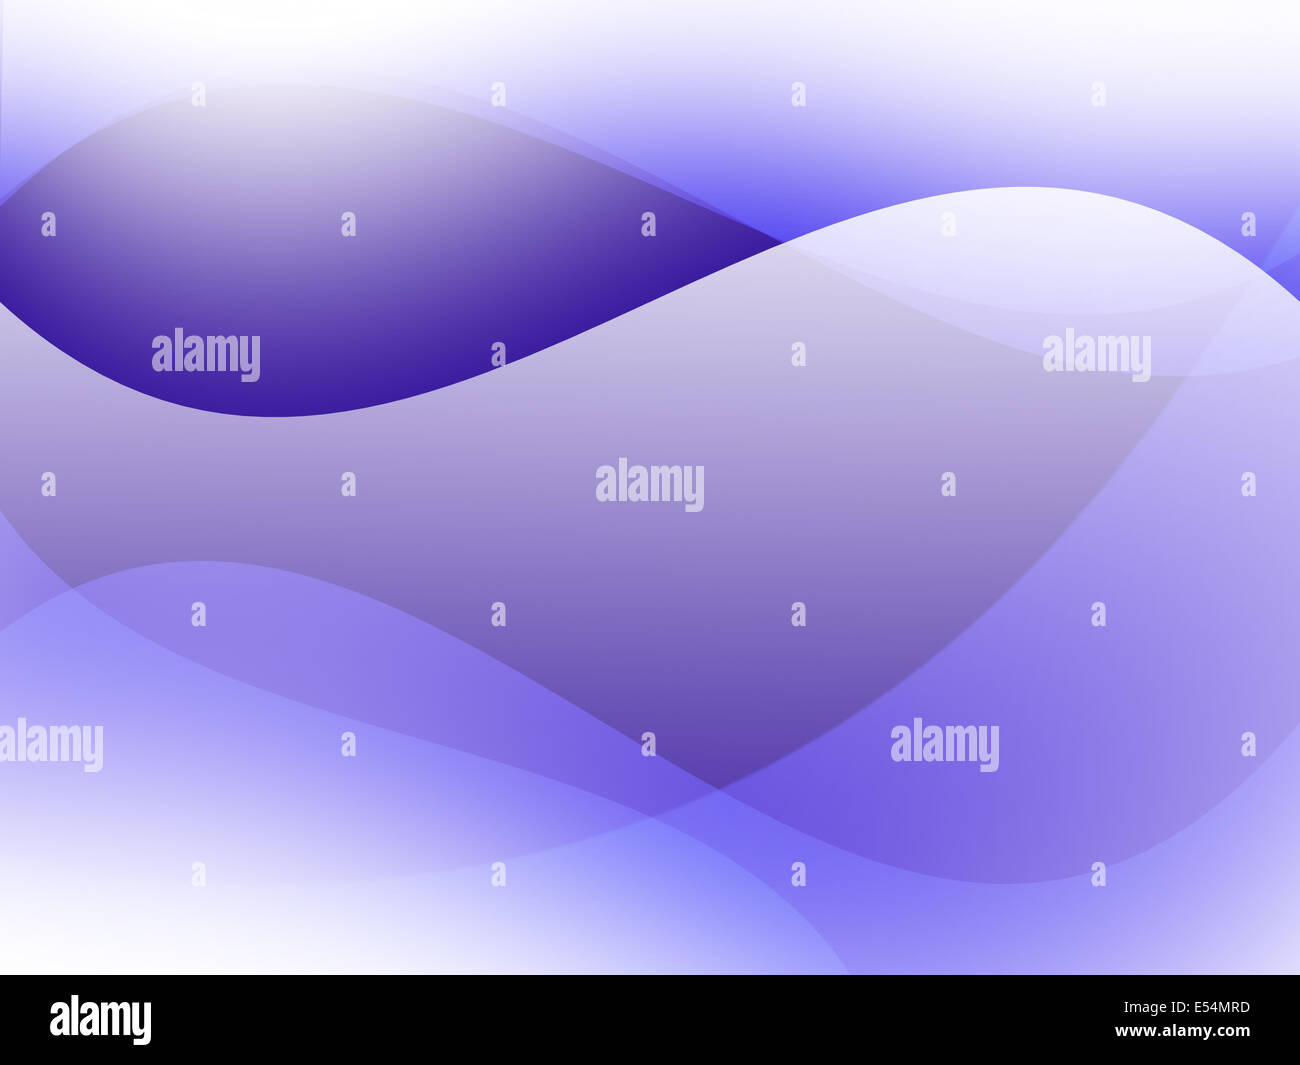 Abstract purple background textures web page blurred. - Stock Image